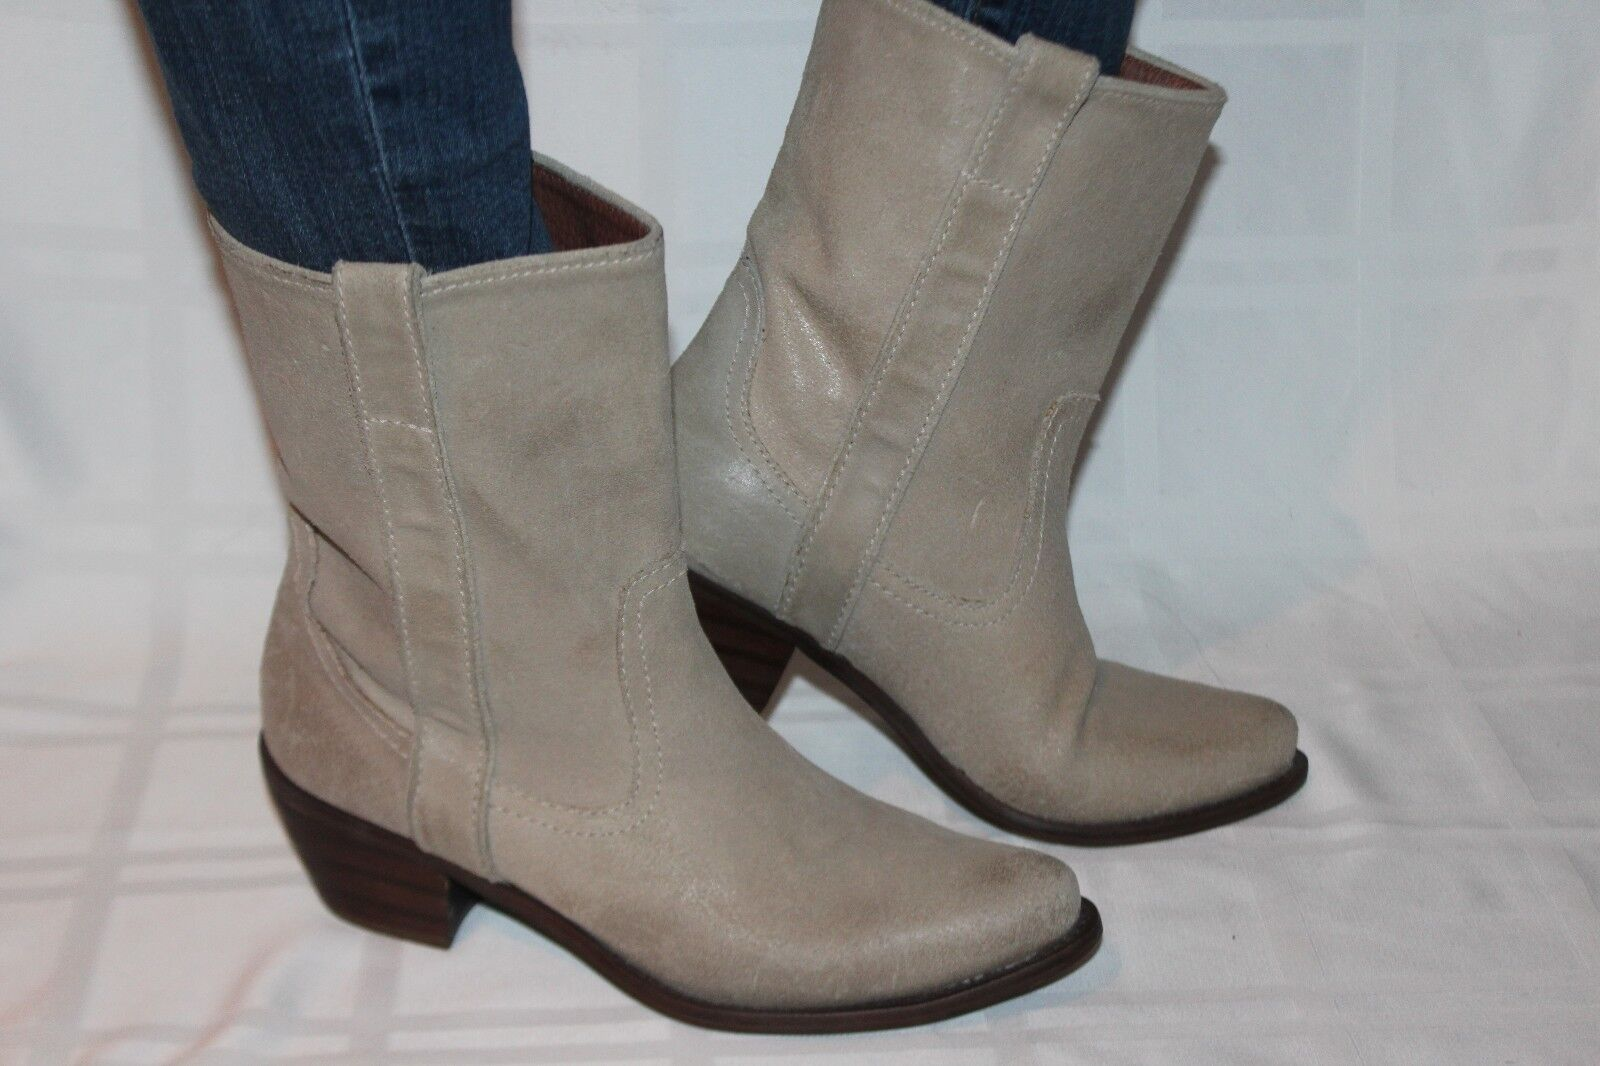 STEVE MADDEN Sand Suede Leather PERAMIS Pull On Western Short Boots Sz 8.5